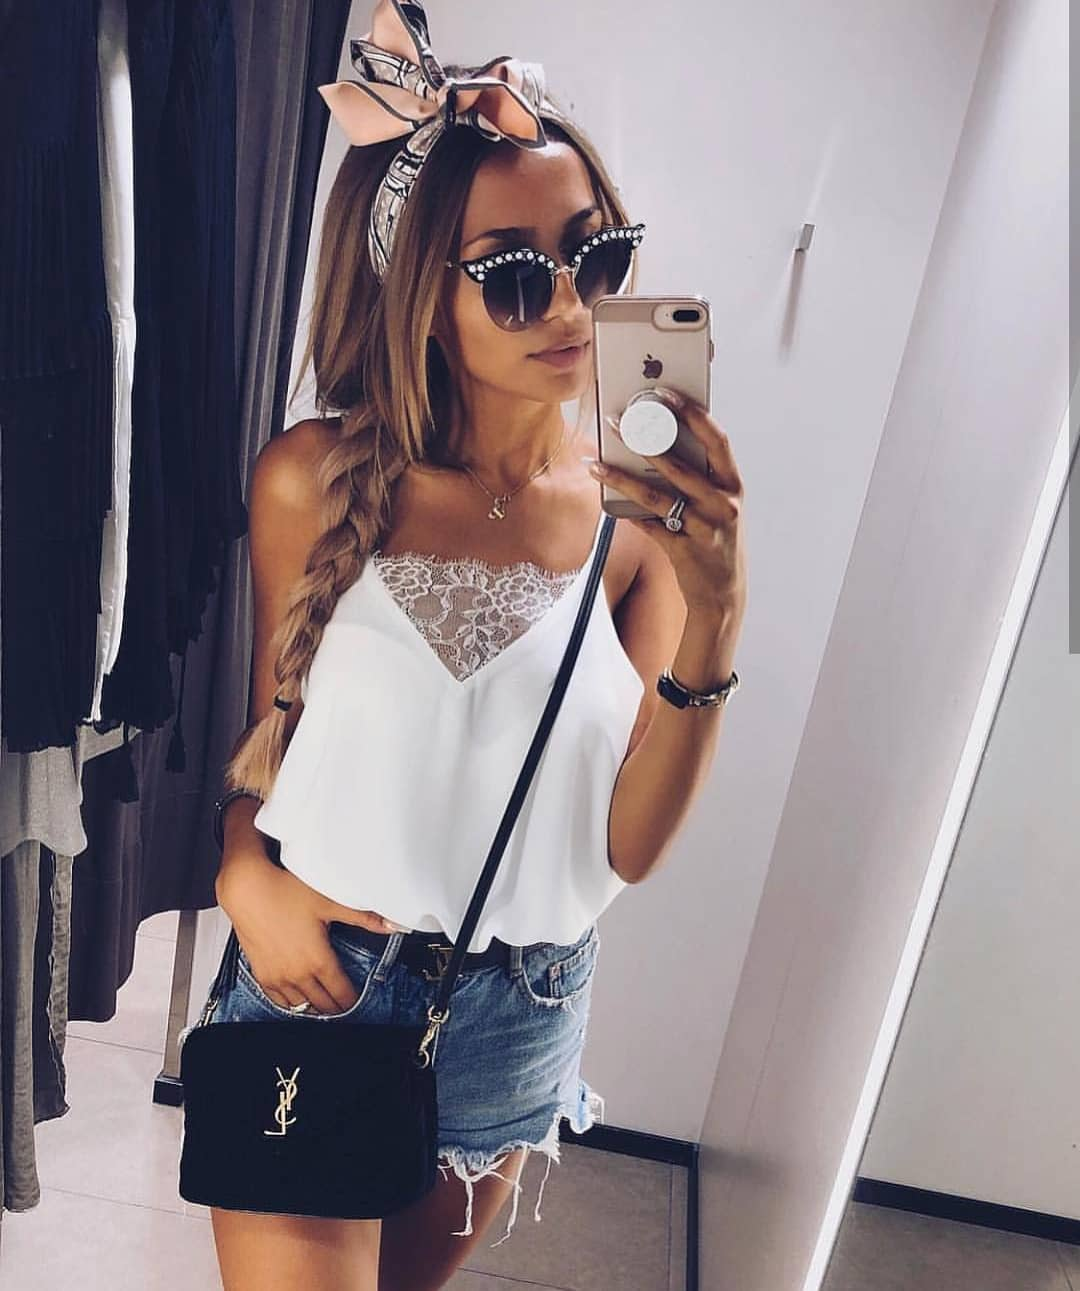 White Sliptank With Lace Neck Detailing And Blue Frayed Denim Mini Skirt 2020